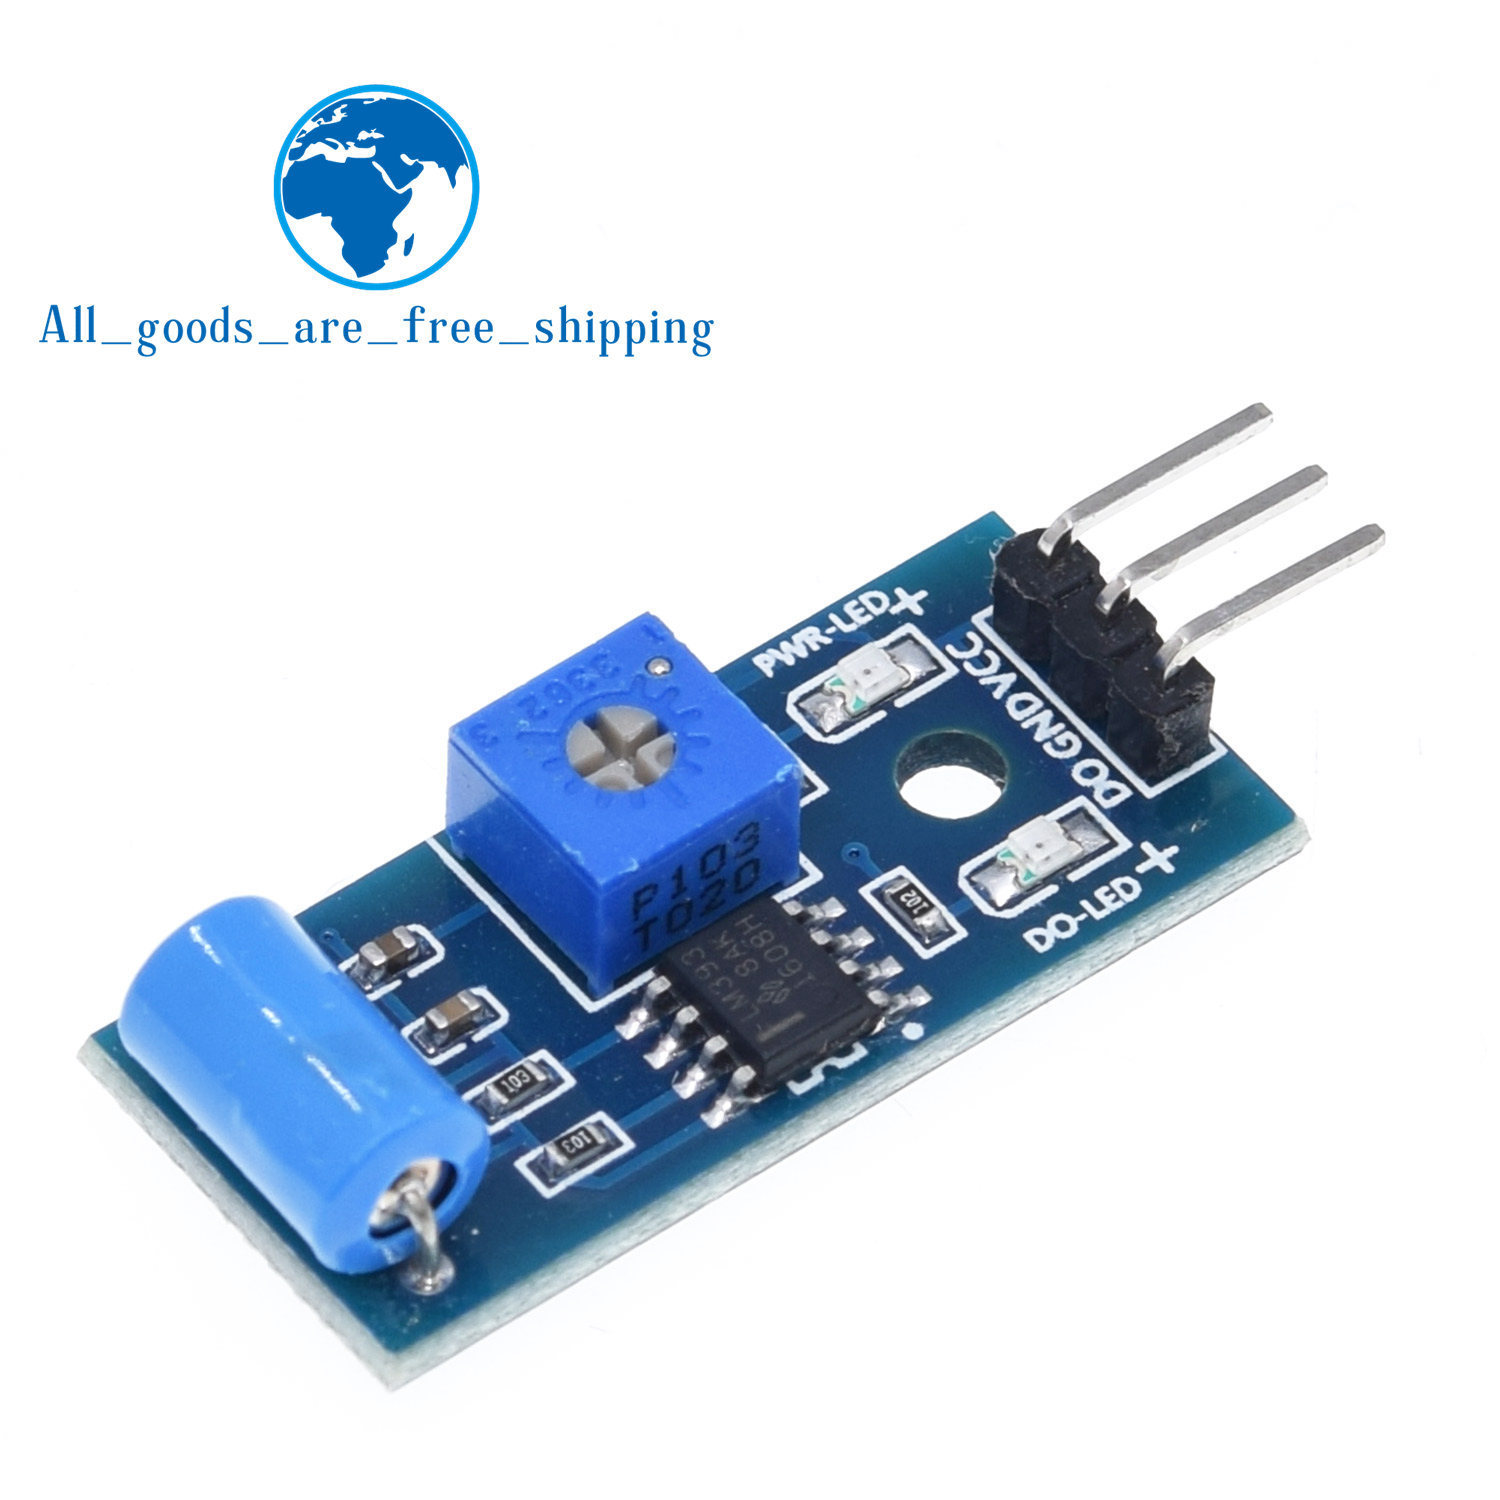 Normally closed type vibration sensor module Alarm sensor module Vibration switch SW-420 for arduino